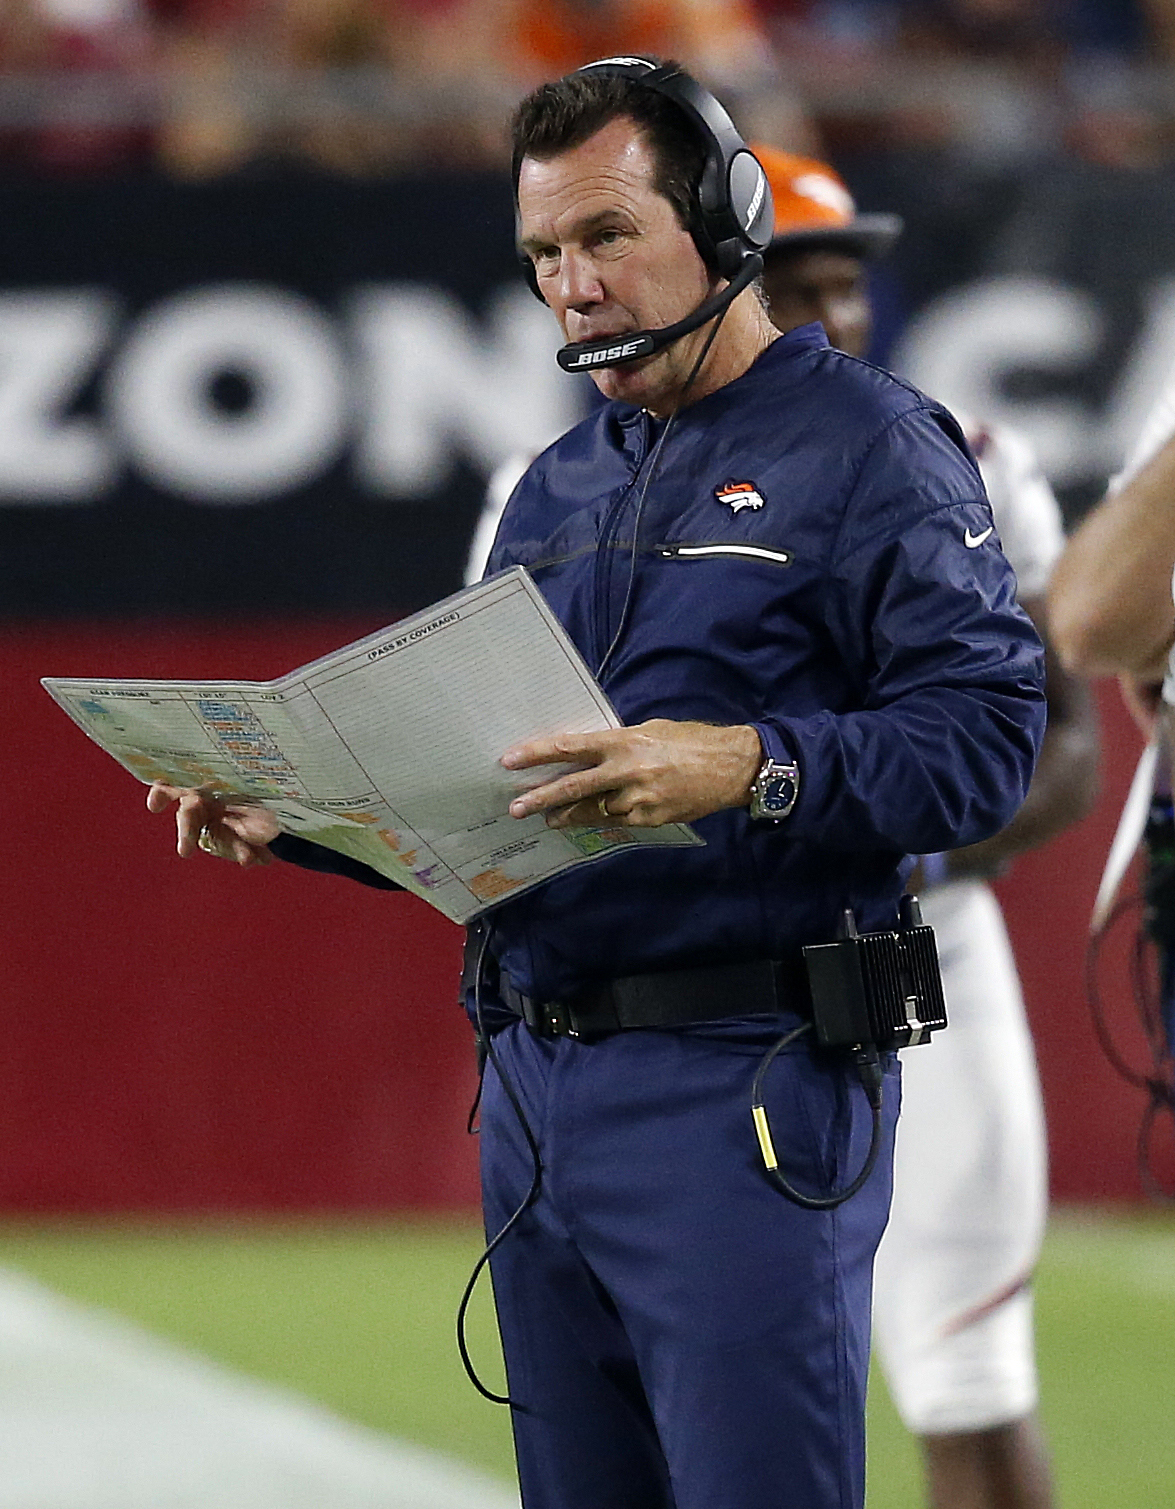 Denver Broncos coach Gary Kubiak watches from the sideline during the second half of the team's NFL preseason football game against the Arizona Cardinals on Thursday, Sept. 1, 2016, in Glendale, Ariz. (AP Photo/Ross D. Franklin)